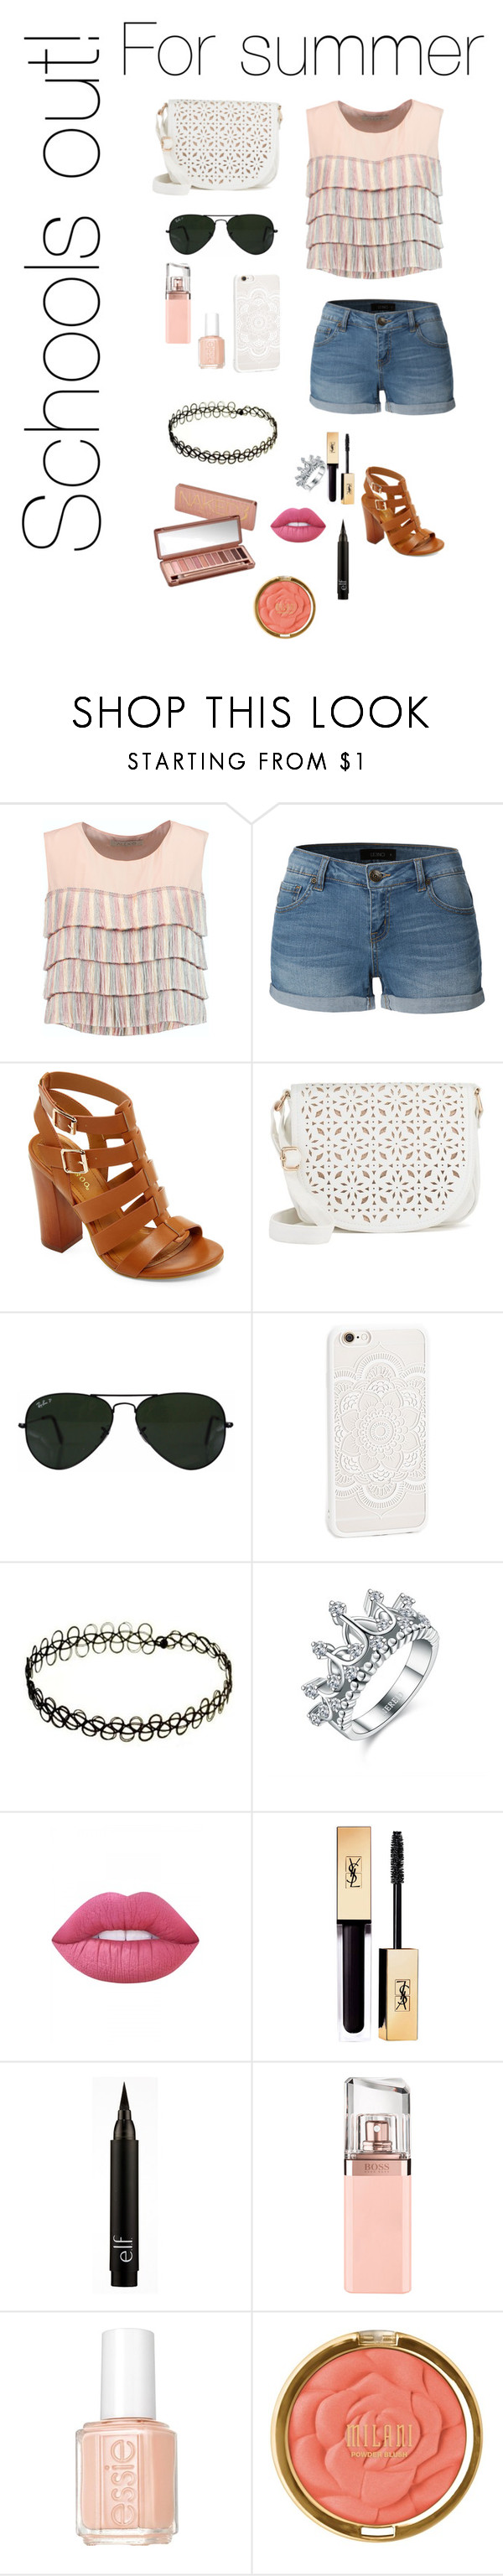 """School is out for the summer"" by addiebdreamgirl ❤ liked on Polyvore featuring Alexis, LE3NO, Bamboo, Under One Sky, Ray-Ban, Lime Crime, Urban Decay, HUGO, Essie and Milani"